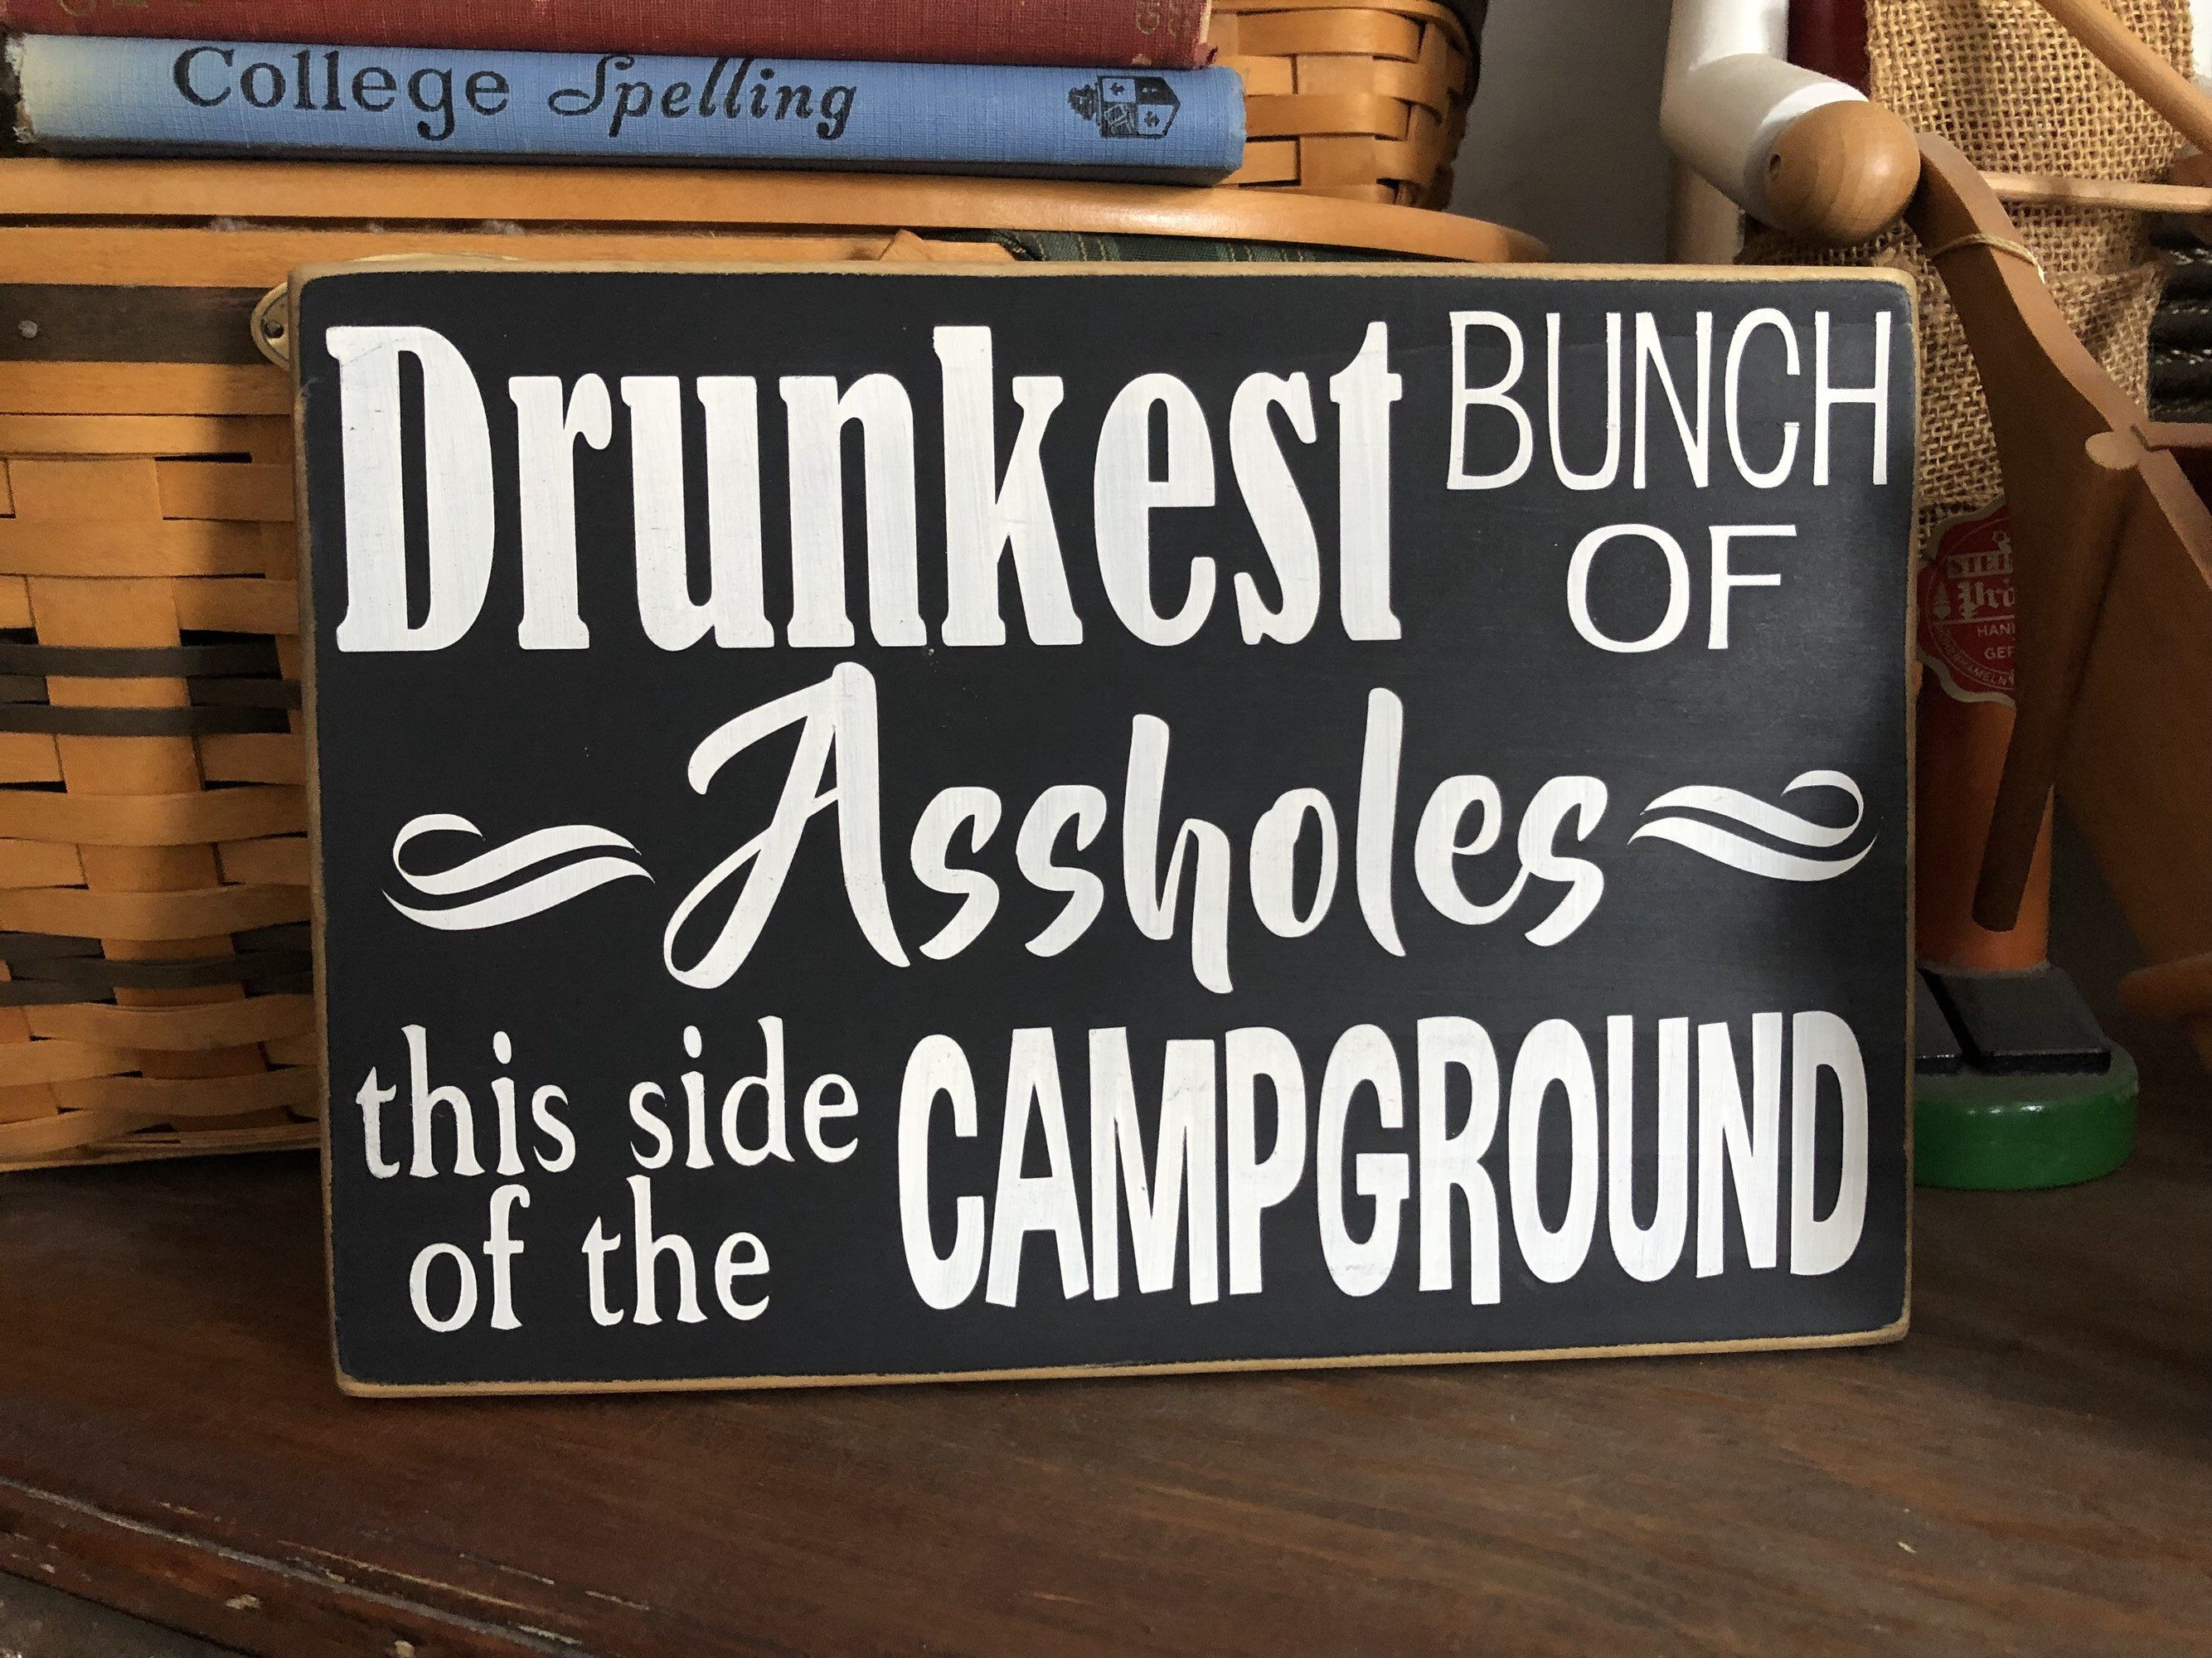 Photo of Camping Sign • Drunkest Bunch of Assholes this side of the Campground • Funny camping sign • Campground Sign • Camping Humor